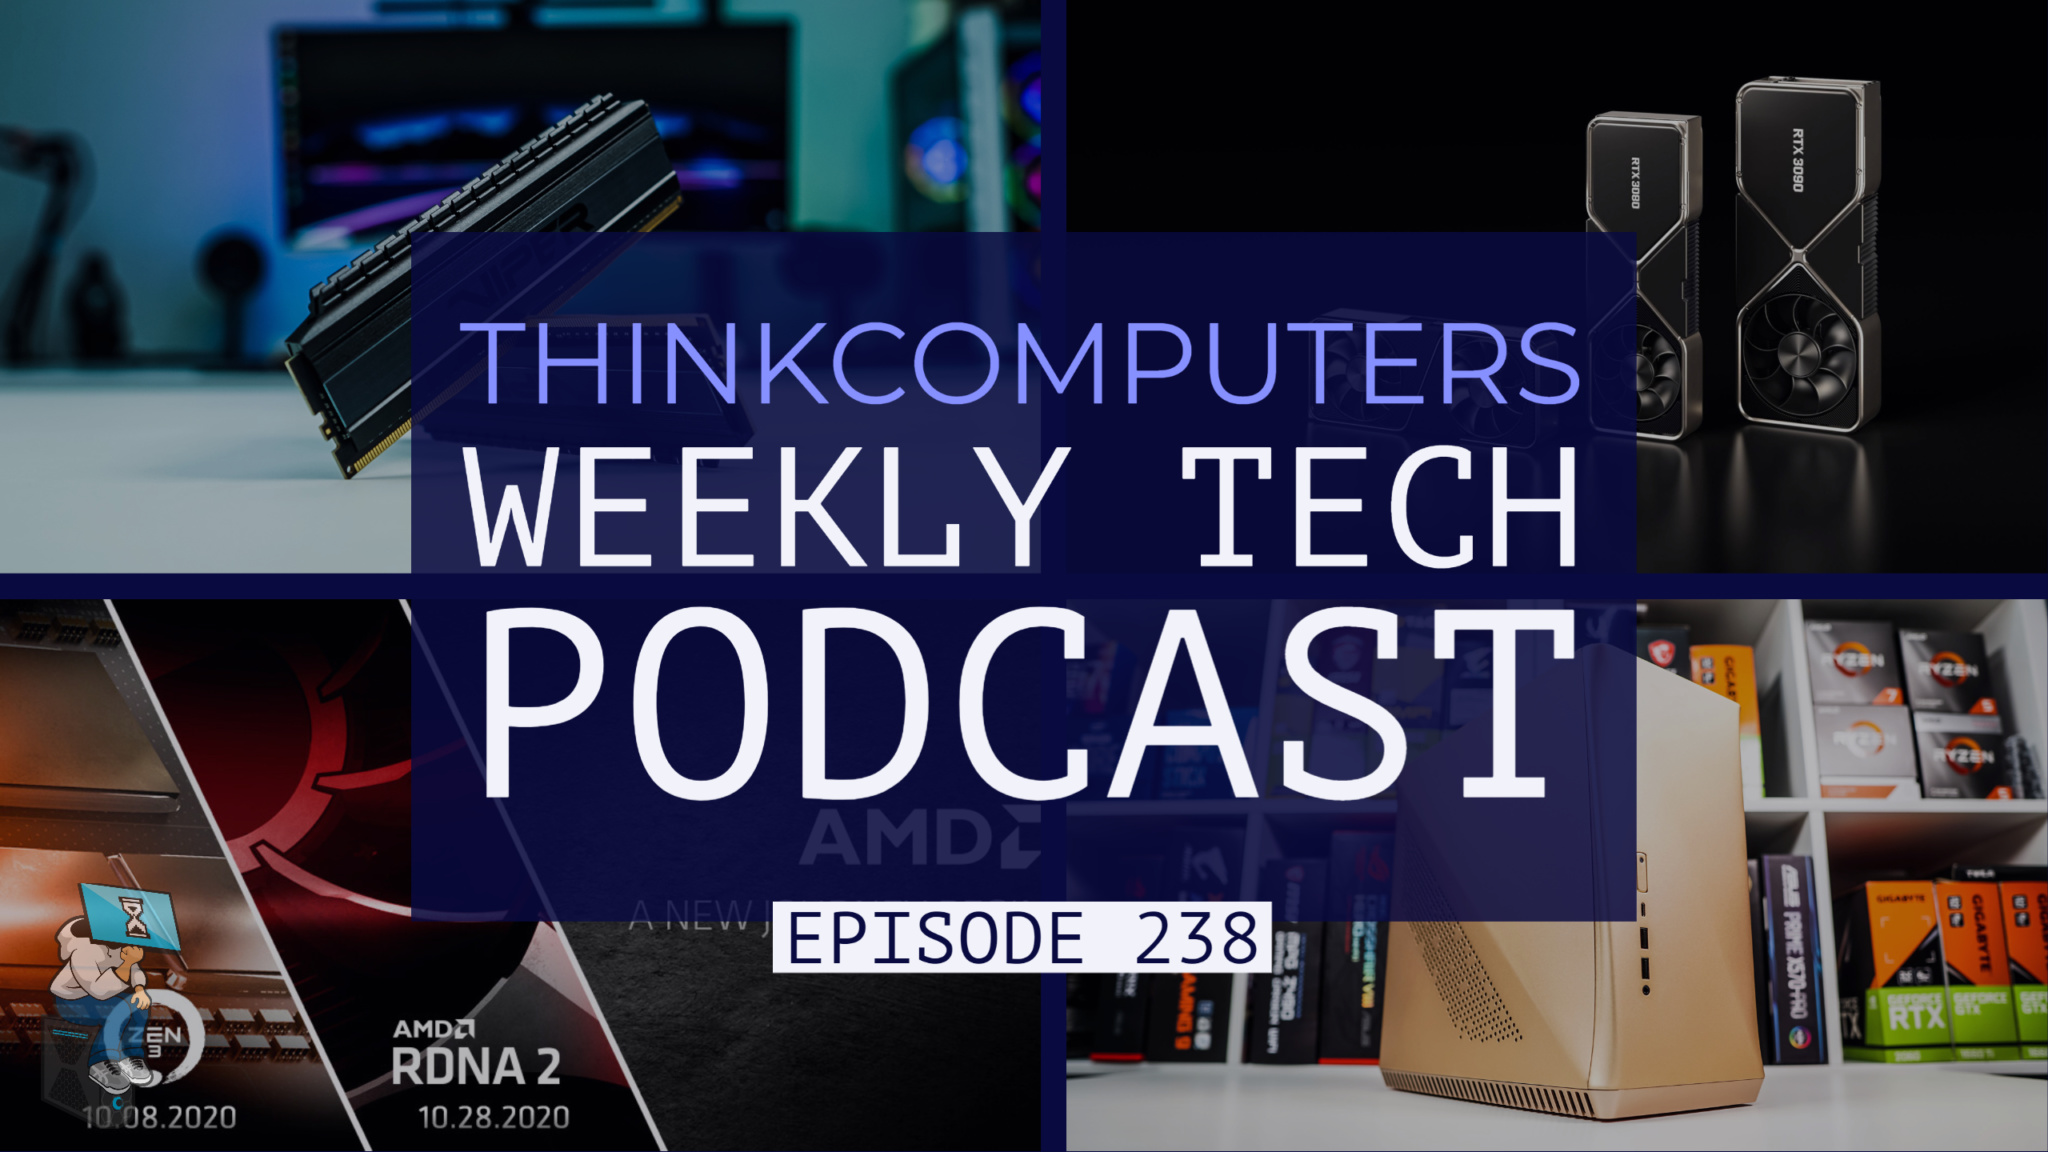 ThinkComputers Podcast #238